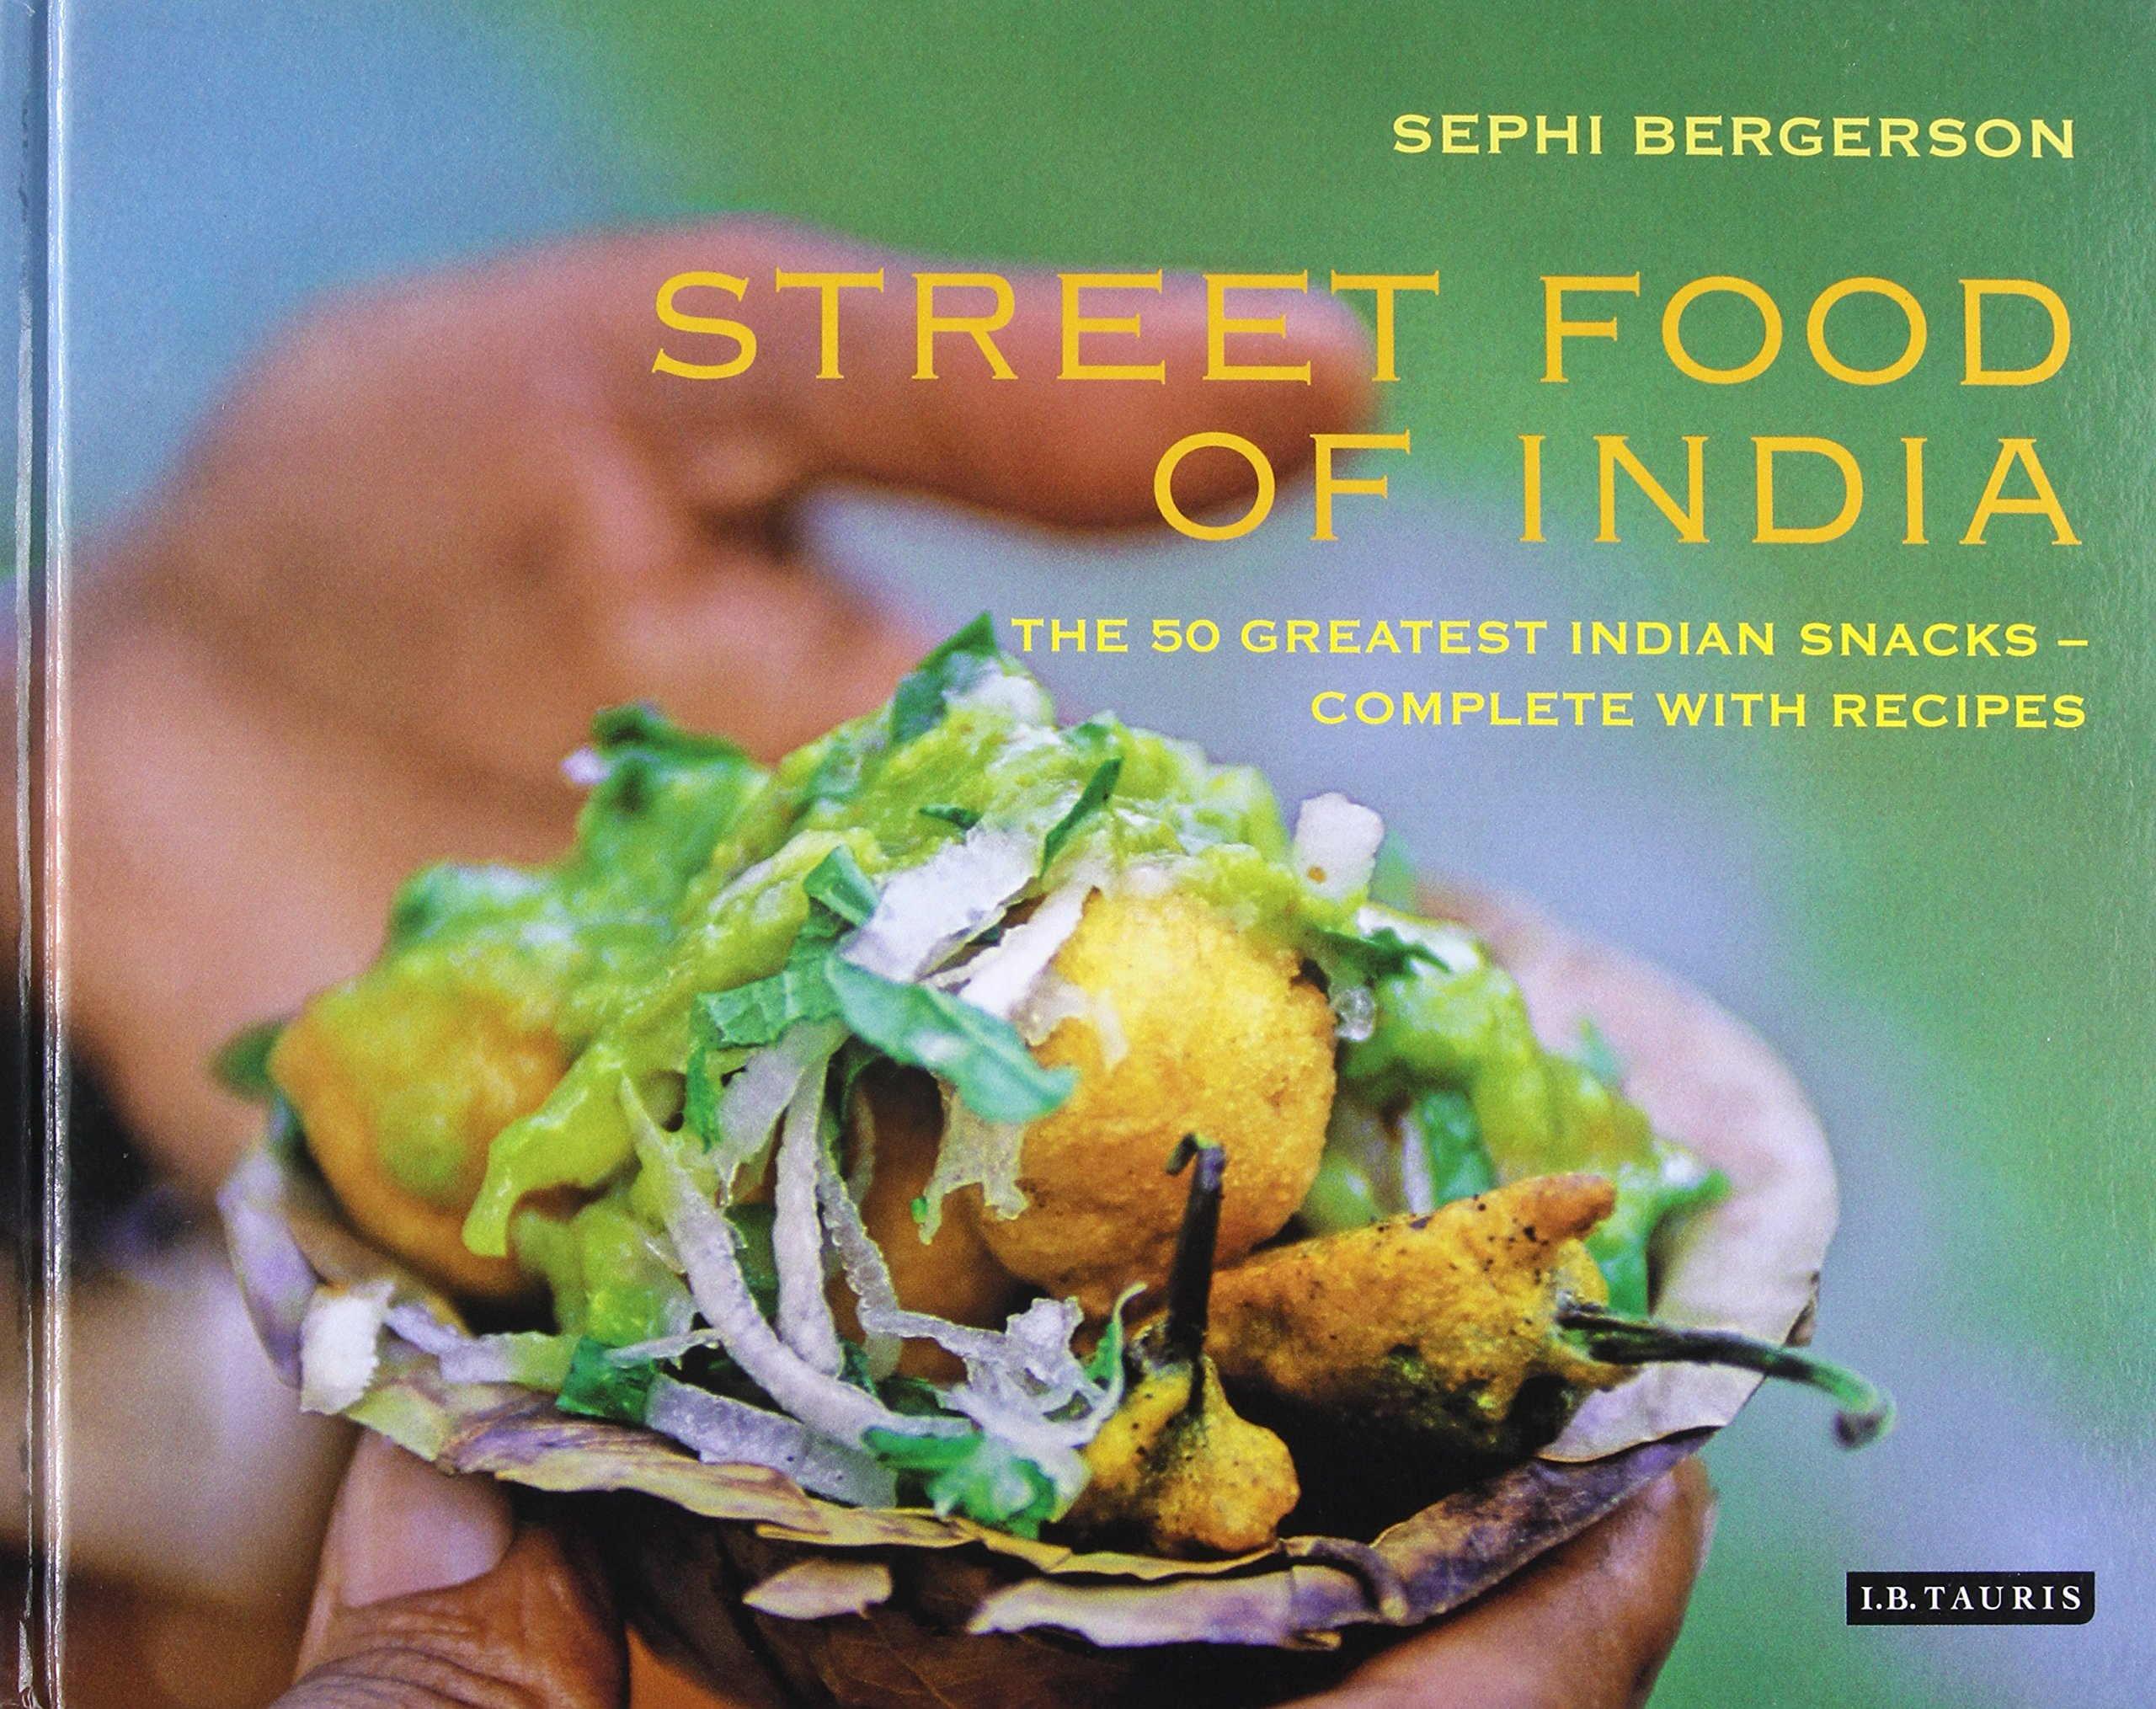 Street food of india the 50 greatest indian snacks complete street food of india the 50 greatest indian snacks complete with recipes sephi bergerson 9781848854208 amazon books forumfinder Choice Image